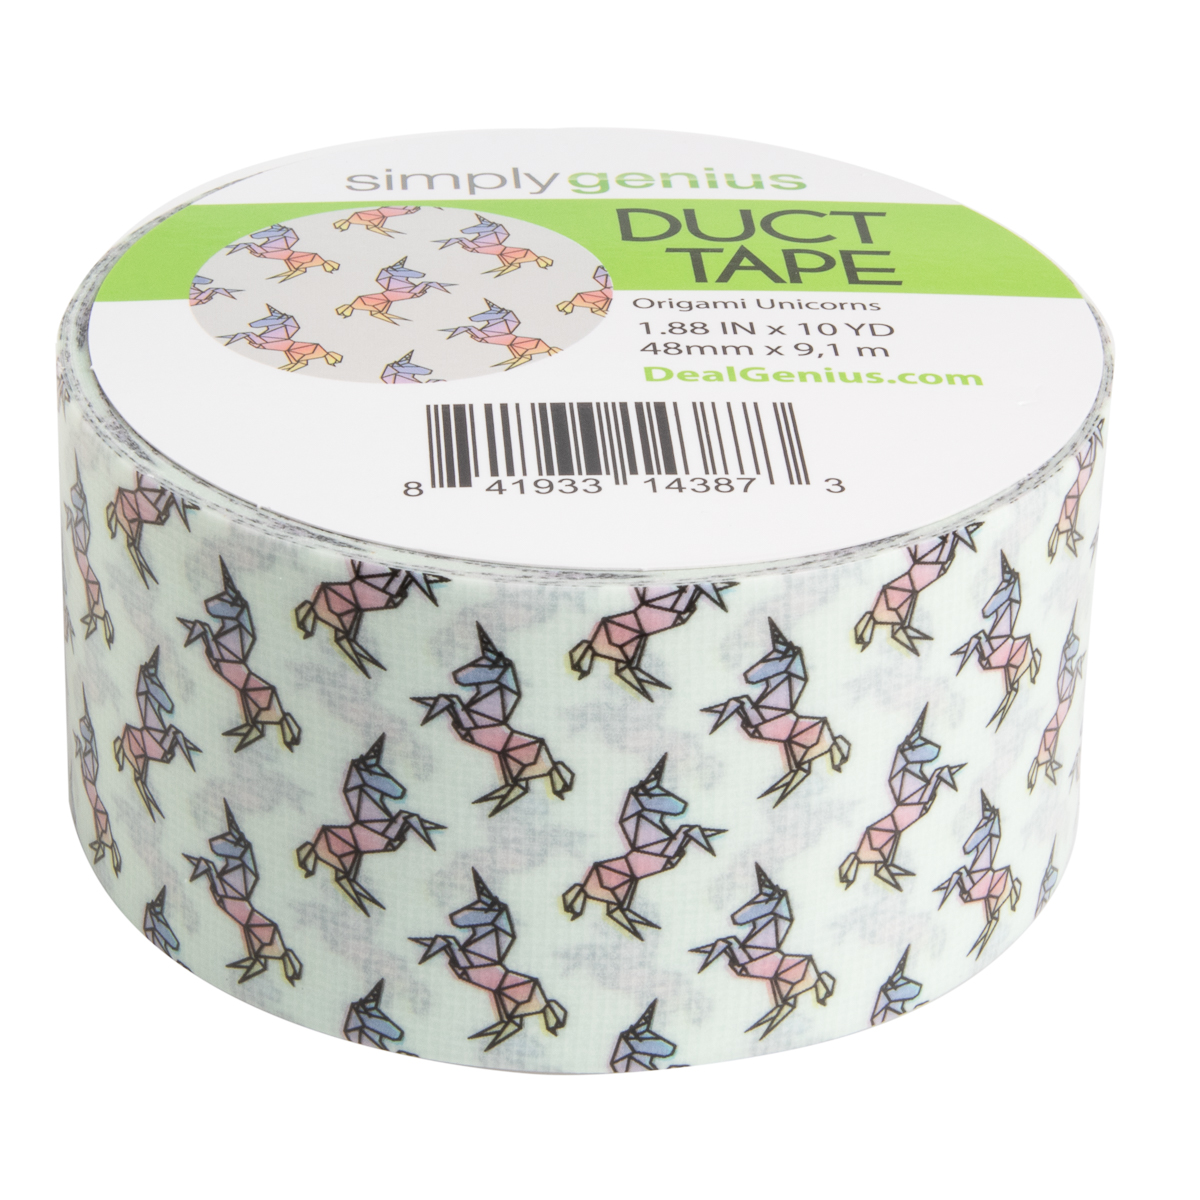 Duct Tape Wallet WHITE WITH COLORED BUTTERFLIES ALL OVER IT Handmade